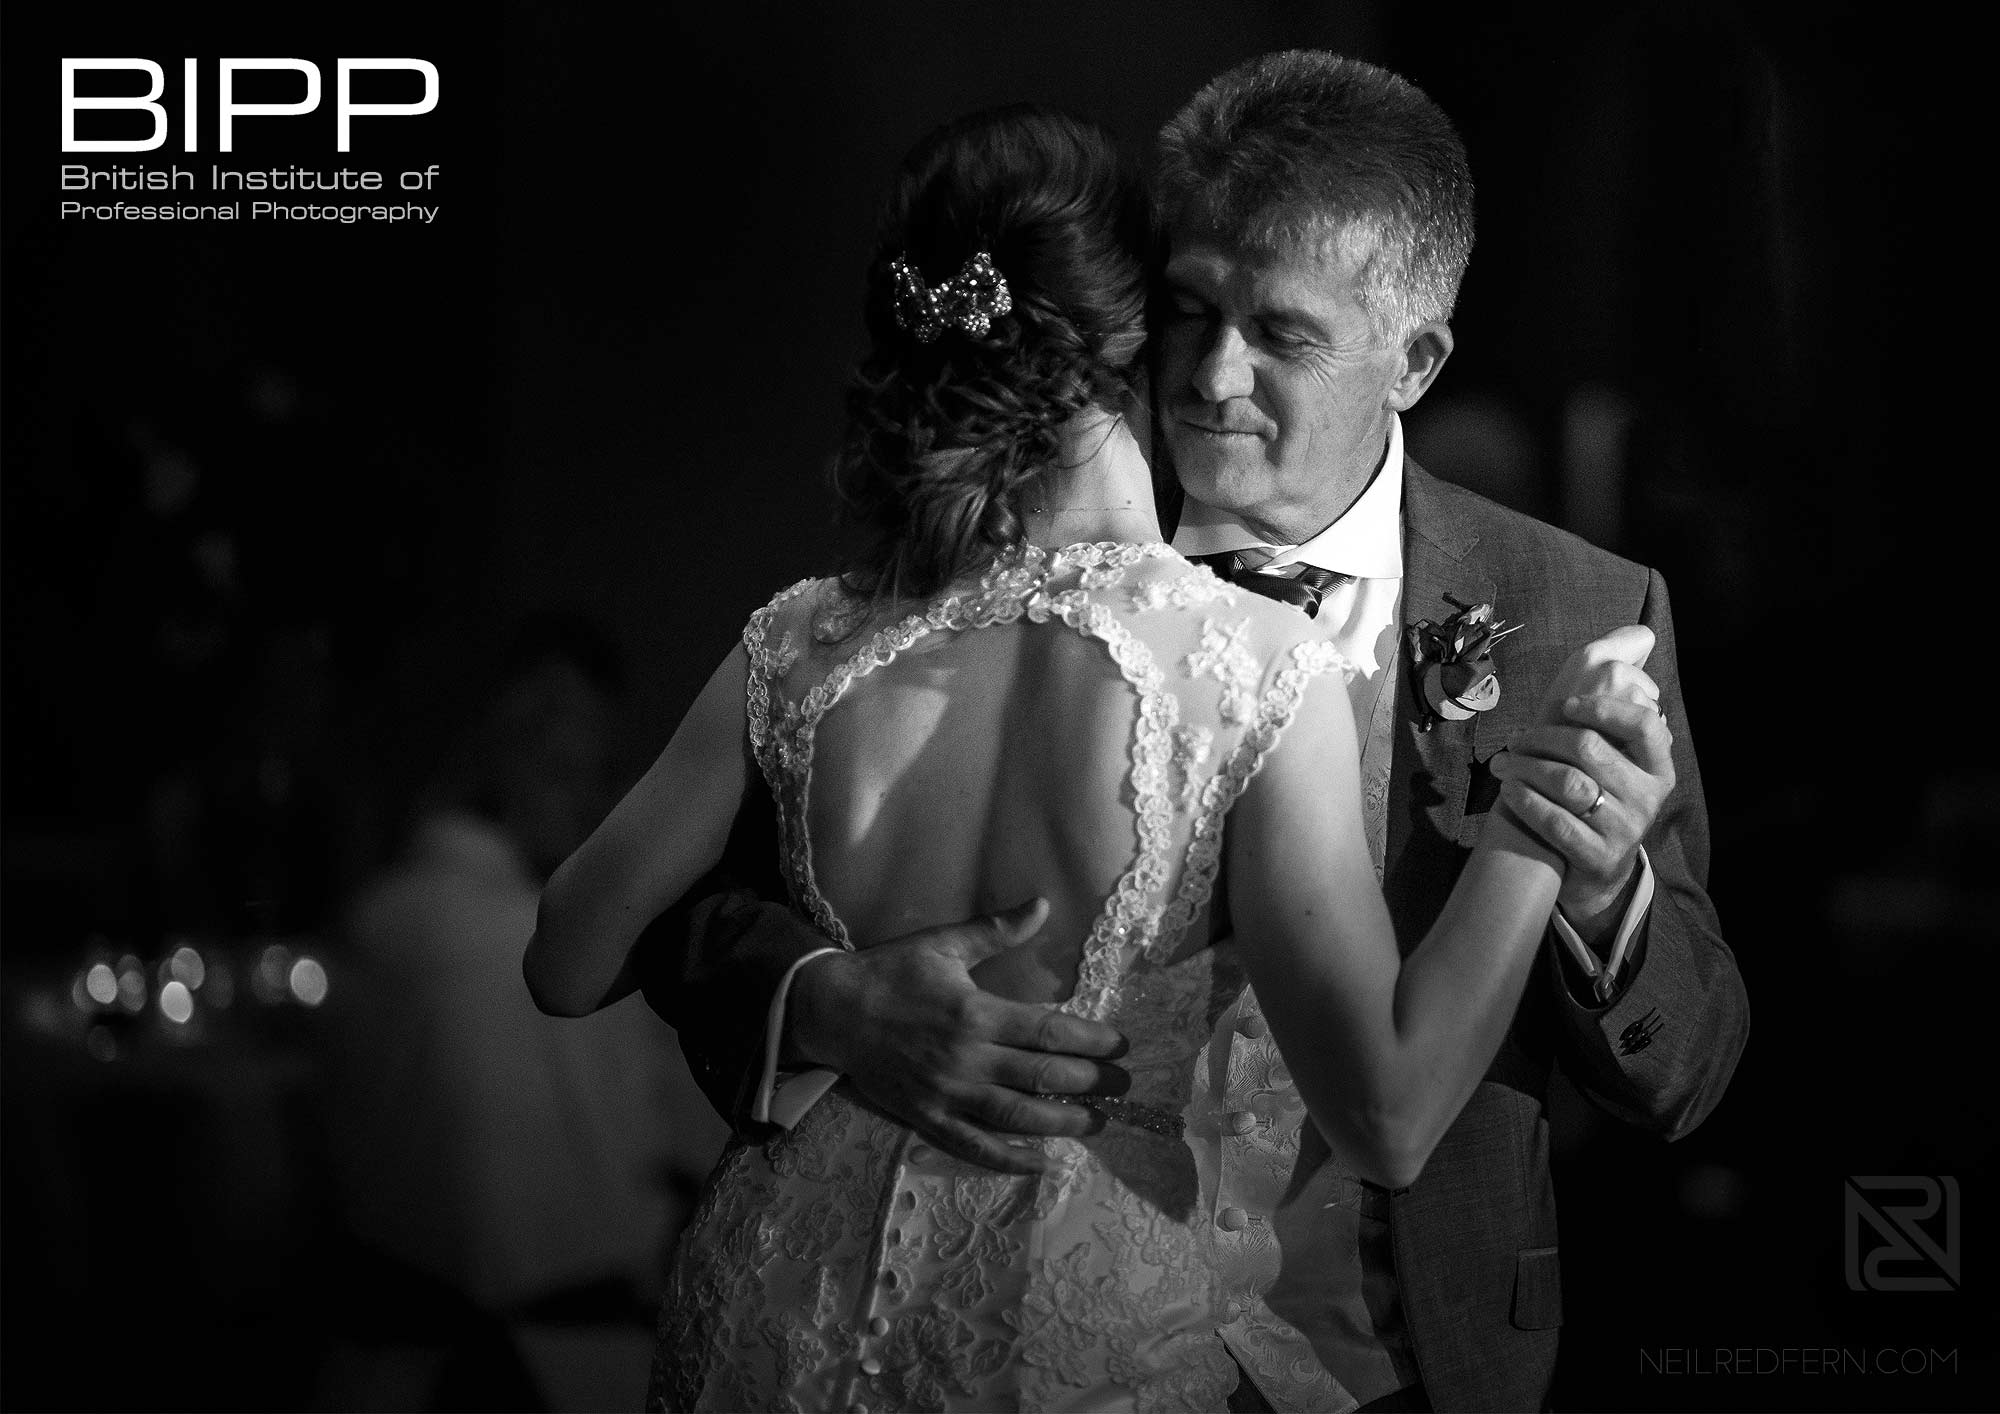 BIPP Gold Award photograph of father and daughter dancing